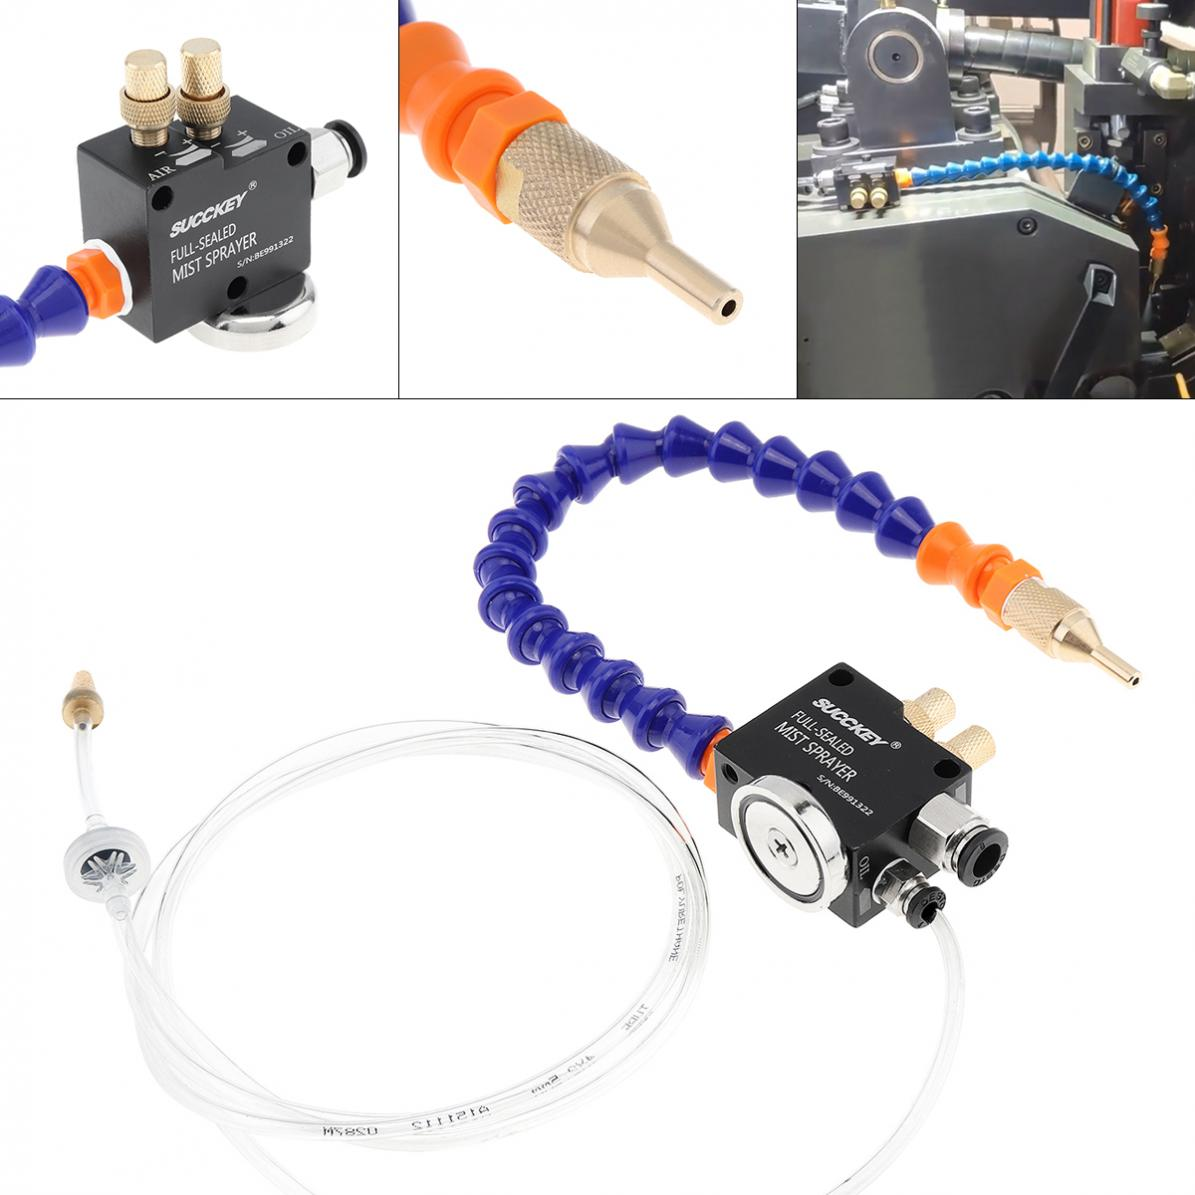 30cm Mist Coolant Lubrication Spray System With Adsorbable Magnetic Base For Metal Cutting Engraving Cooling Machine / CNC Lathe